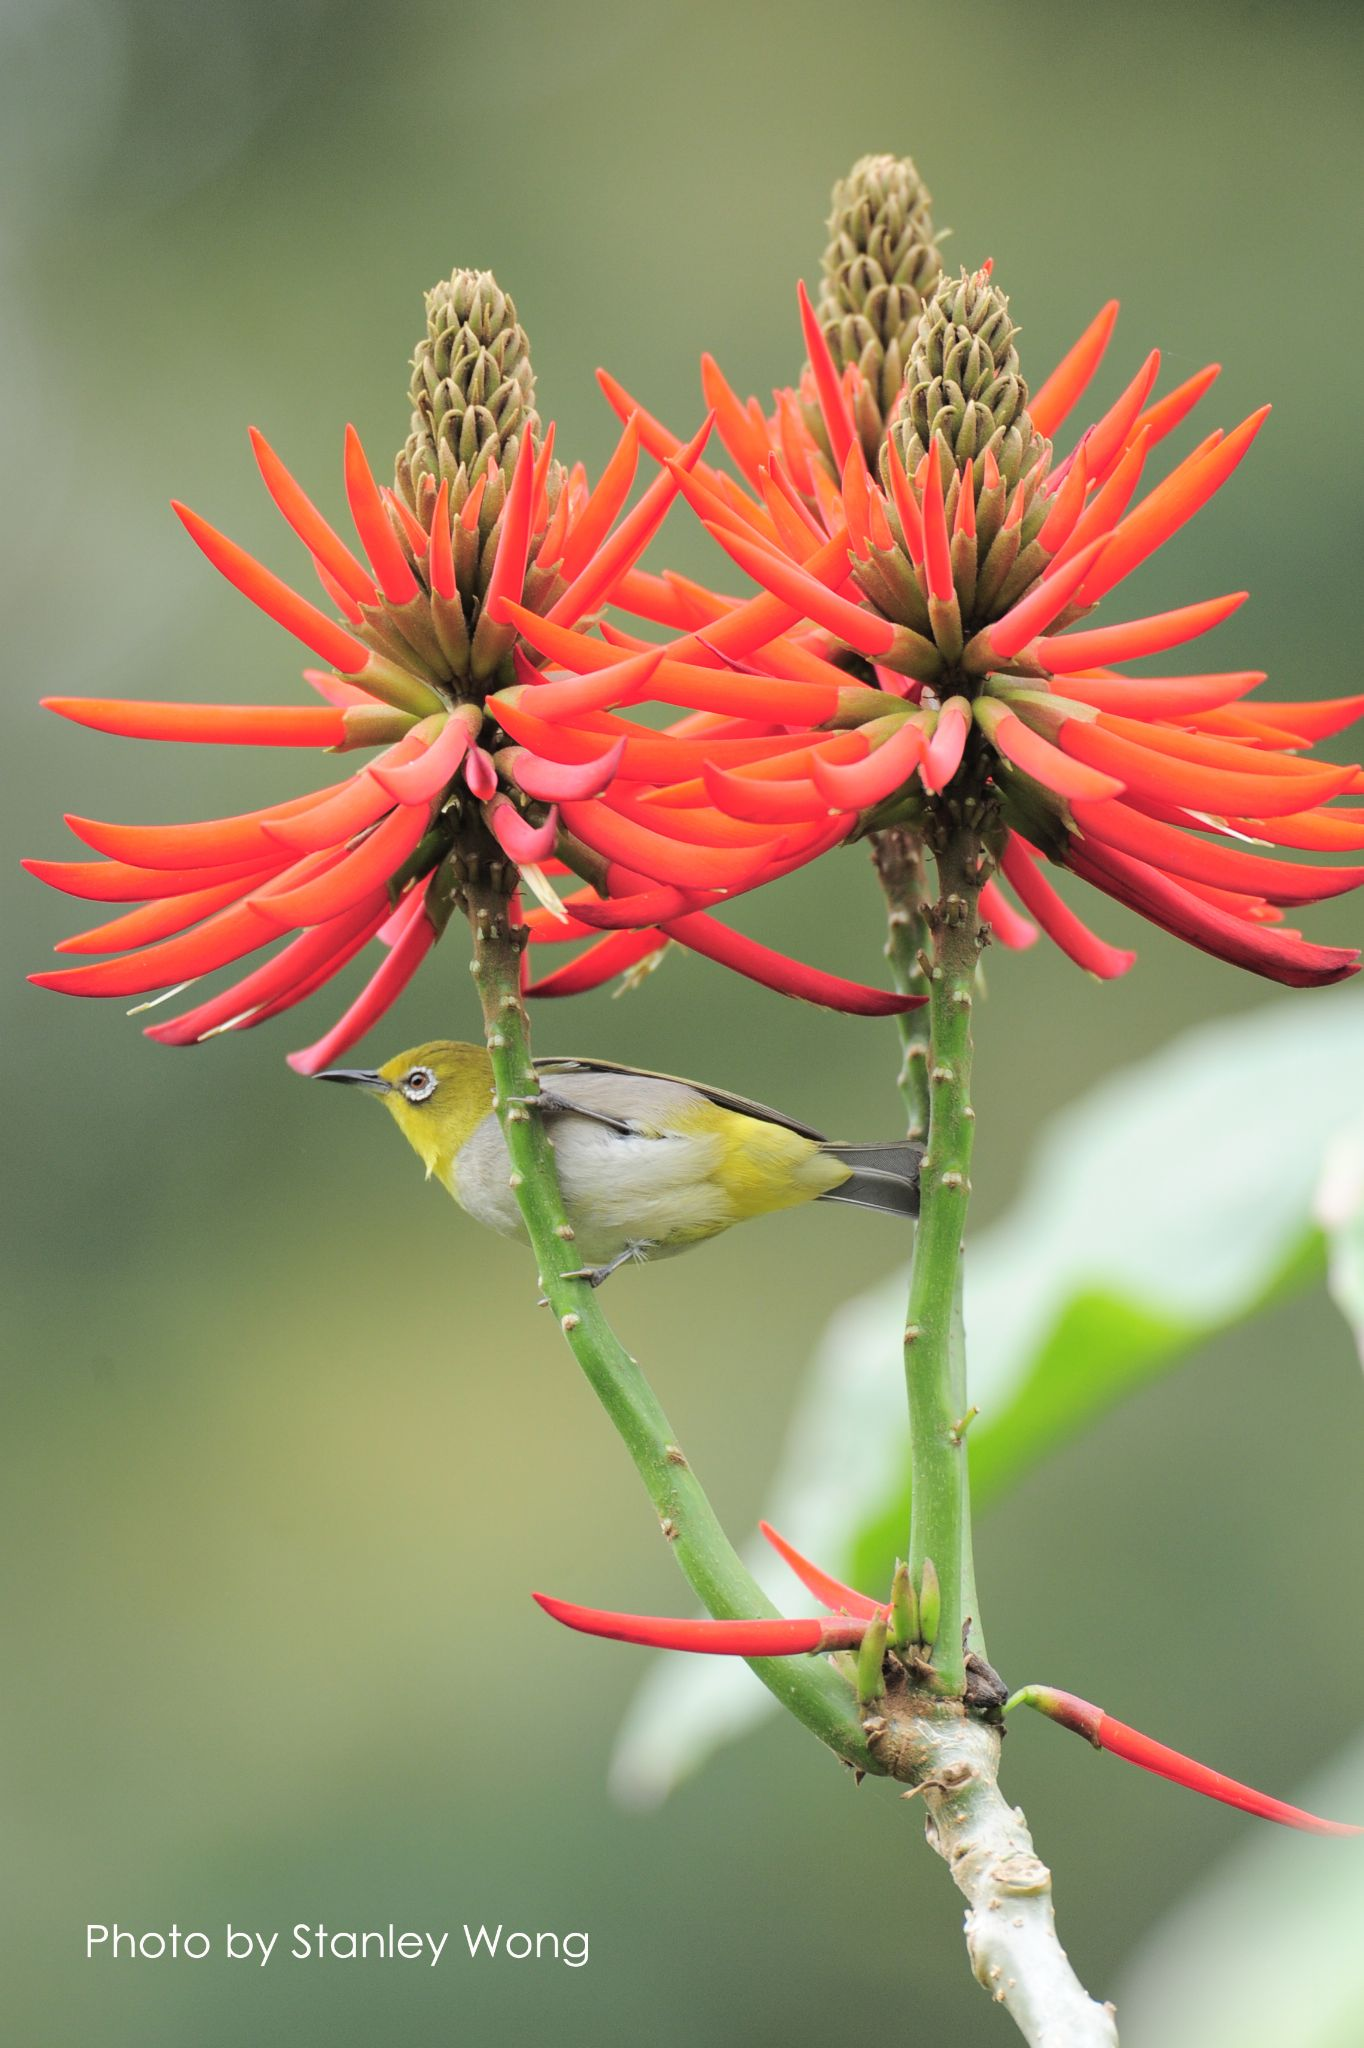 Japanese White-eye and coral tree flowers by Stanley Wong